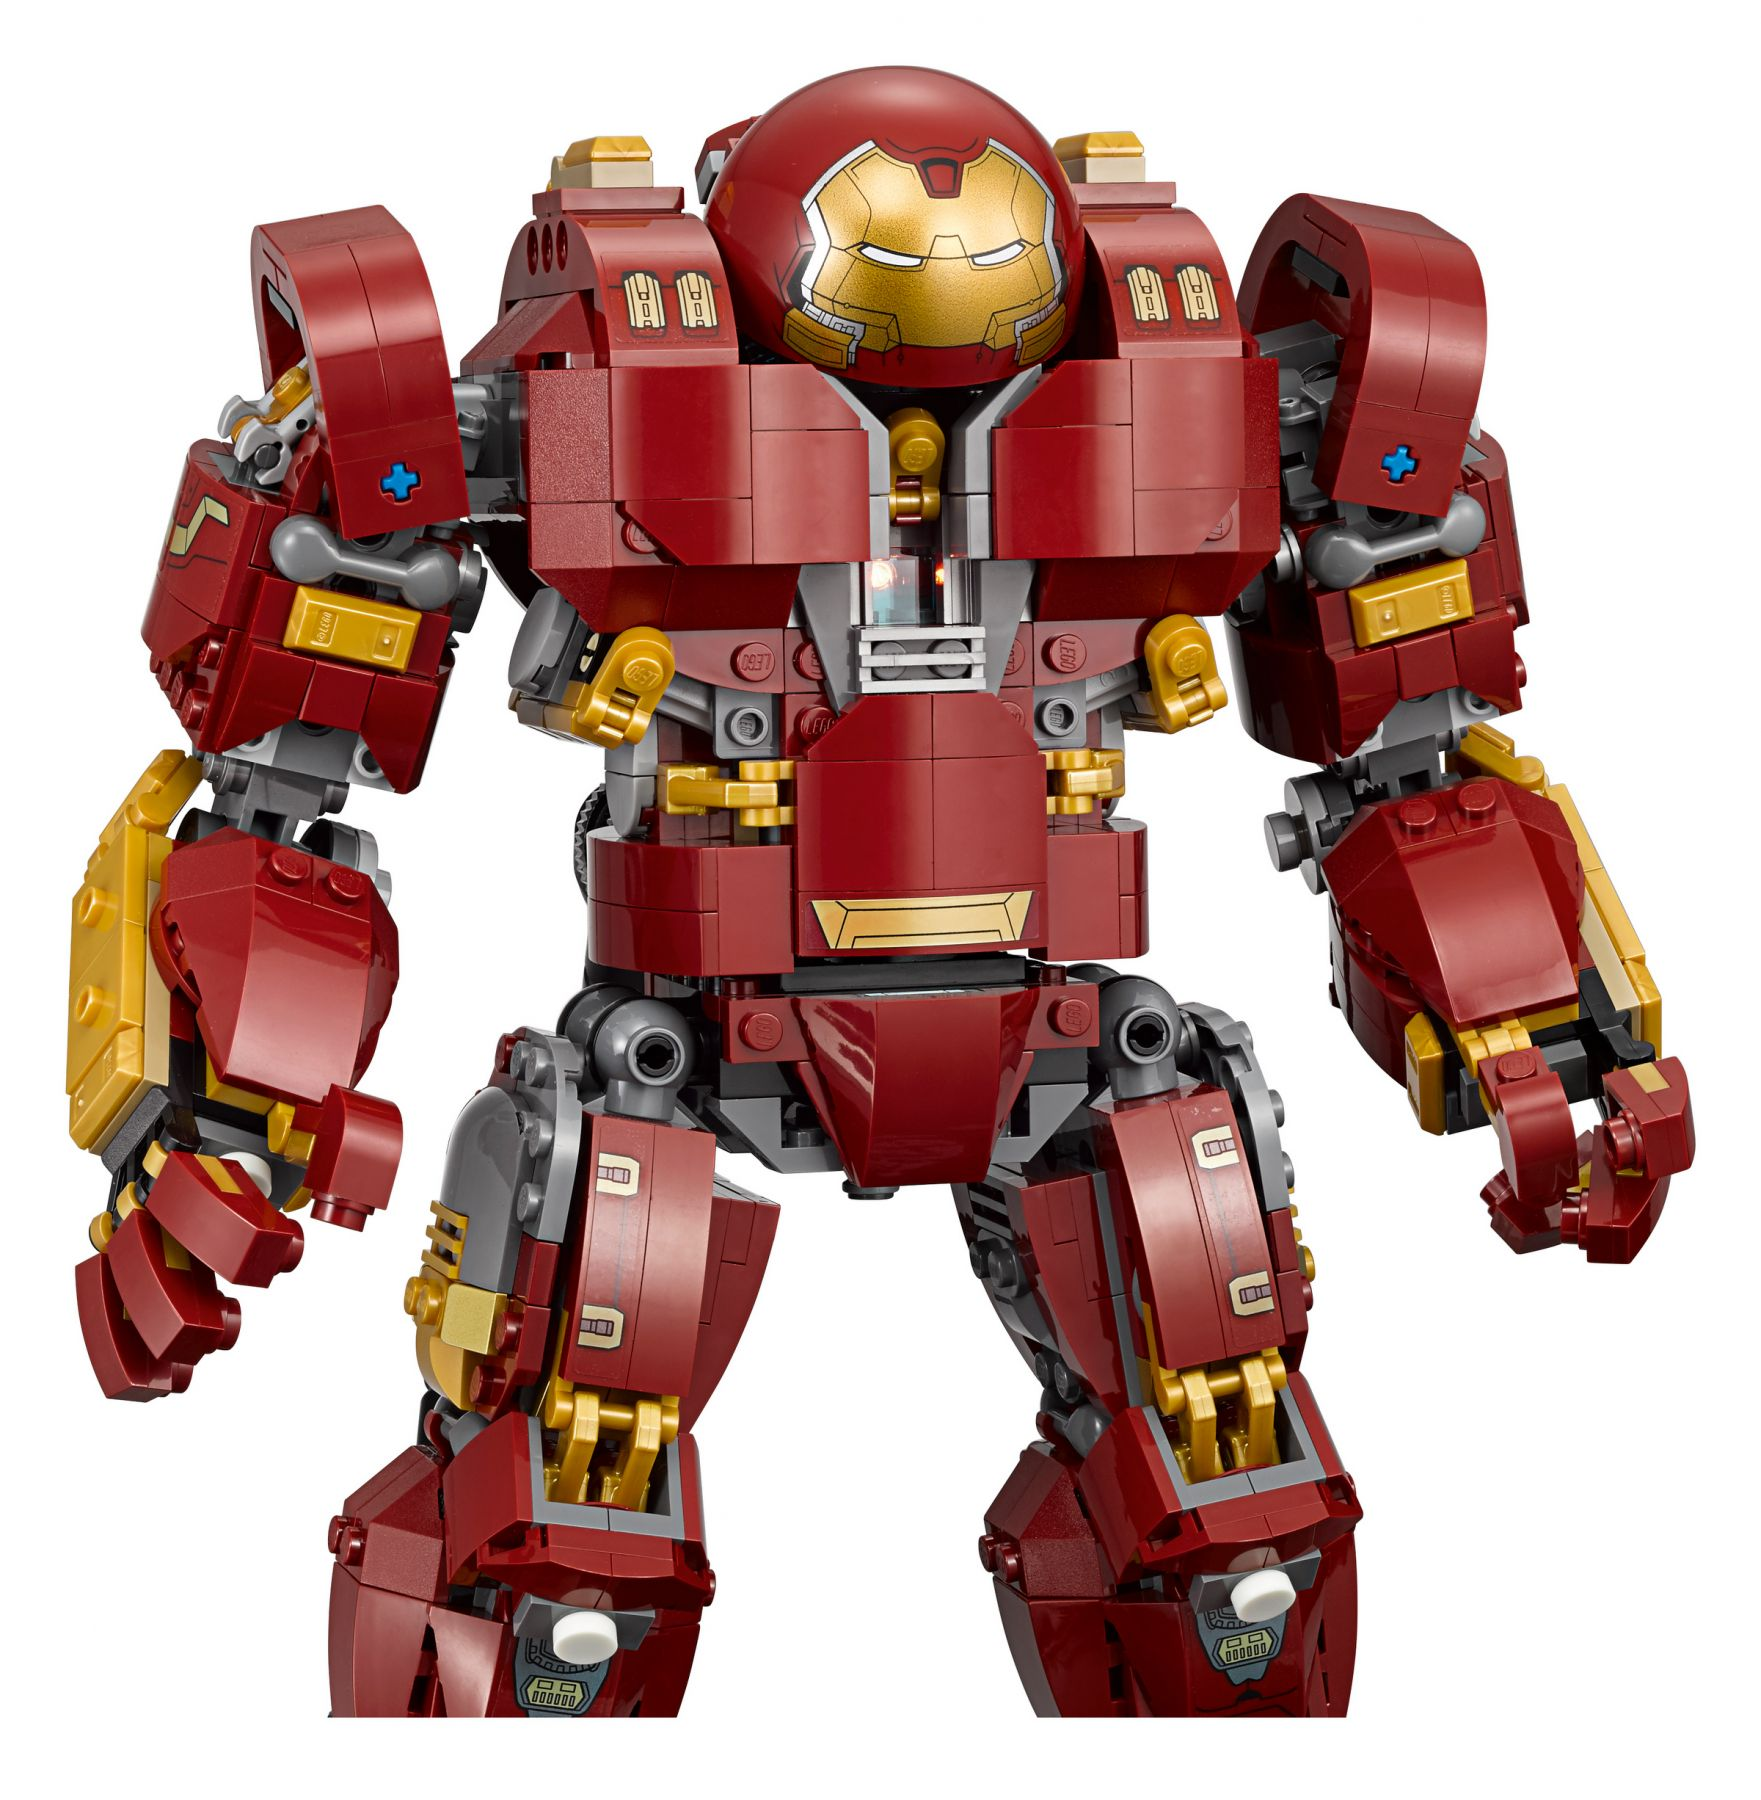 LEGO Super Heroes 76105 Marvel Avengers: Infinity War - The Hulkbuster: Ultron Edition LEGO_76105_alt5.jpg